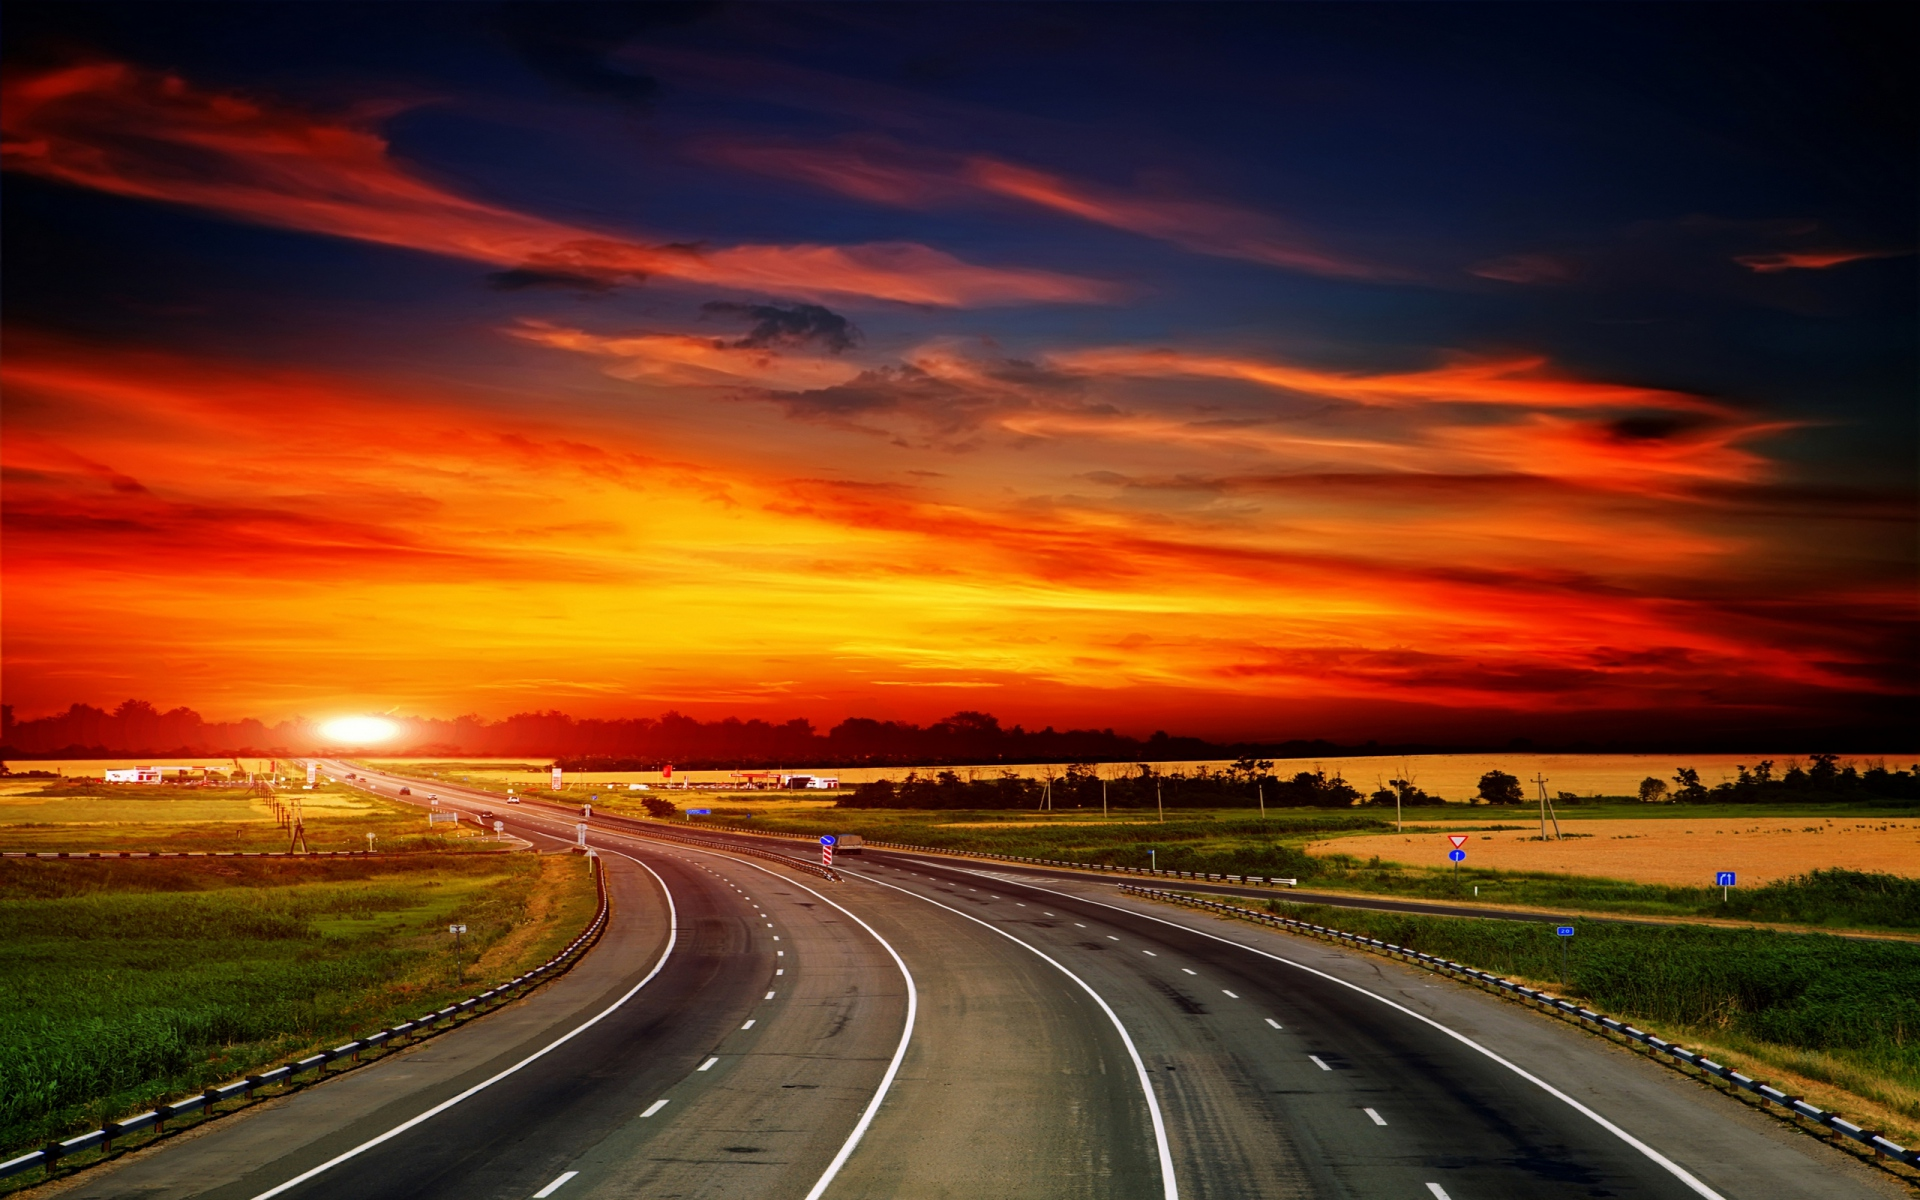 Highway Amp Fire Red Sky Wallpapers Highway Amp Fire Red Sky